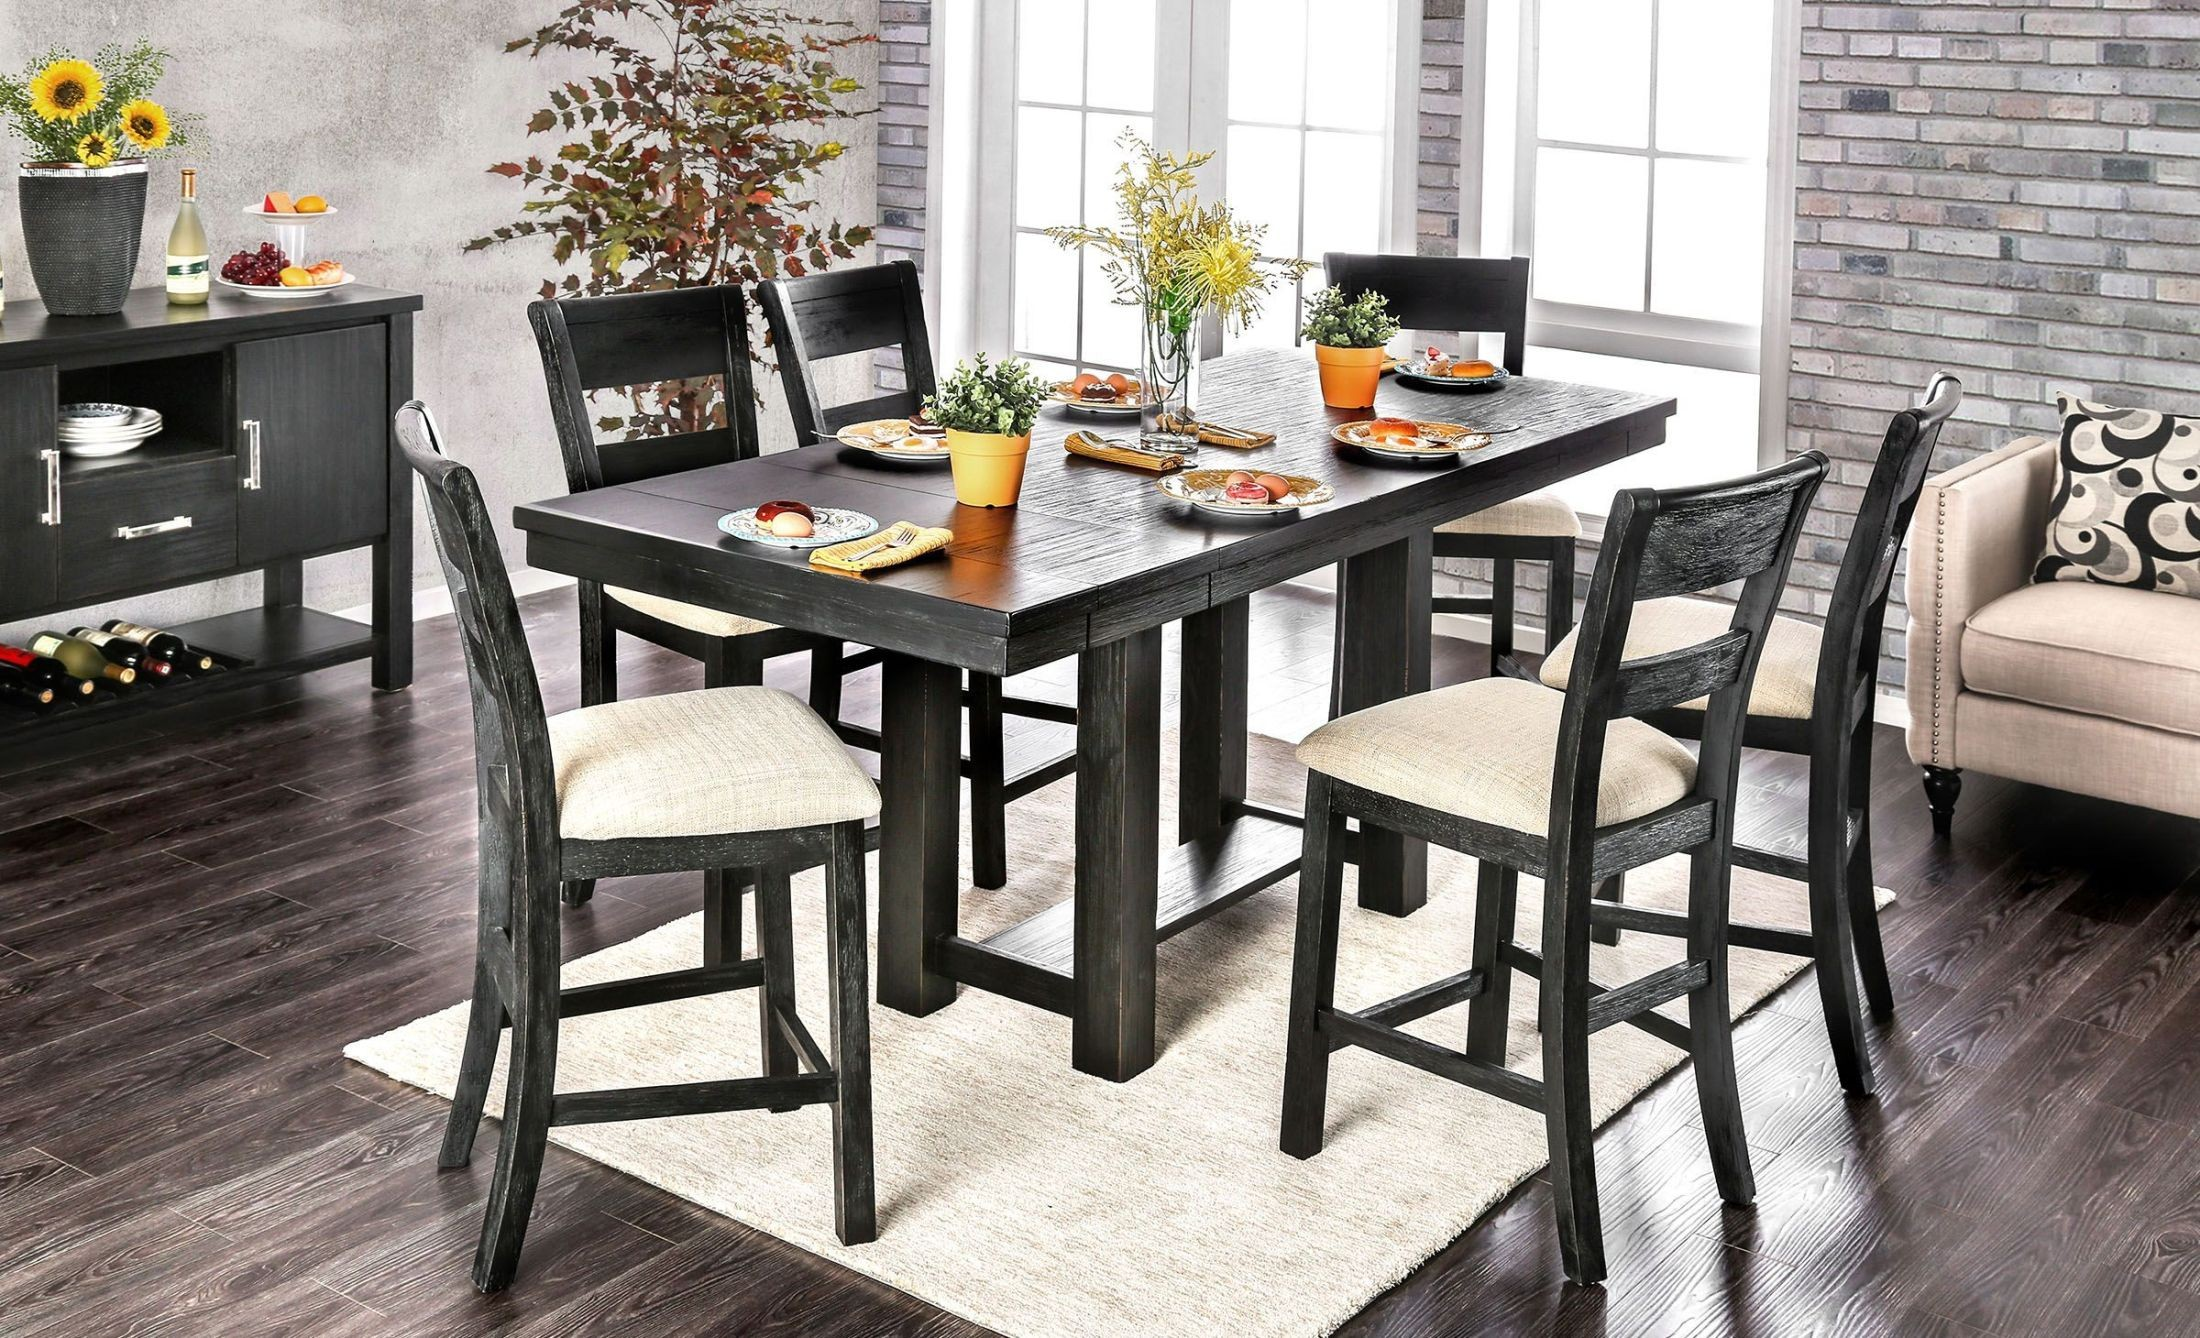 thomaston brushed black counter height dining room set cm3543pt table